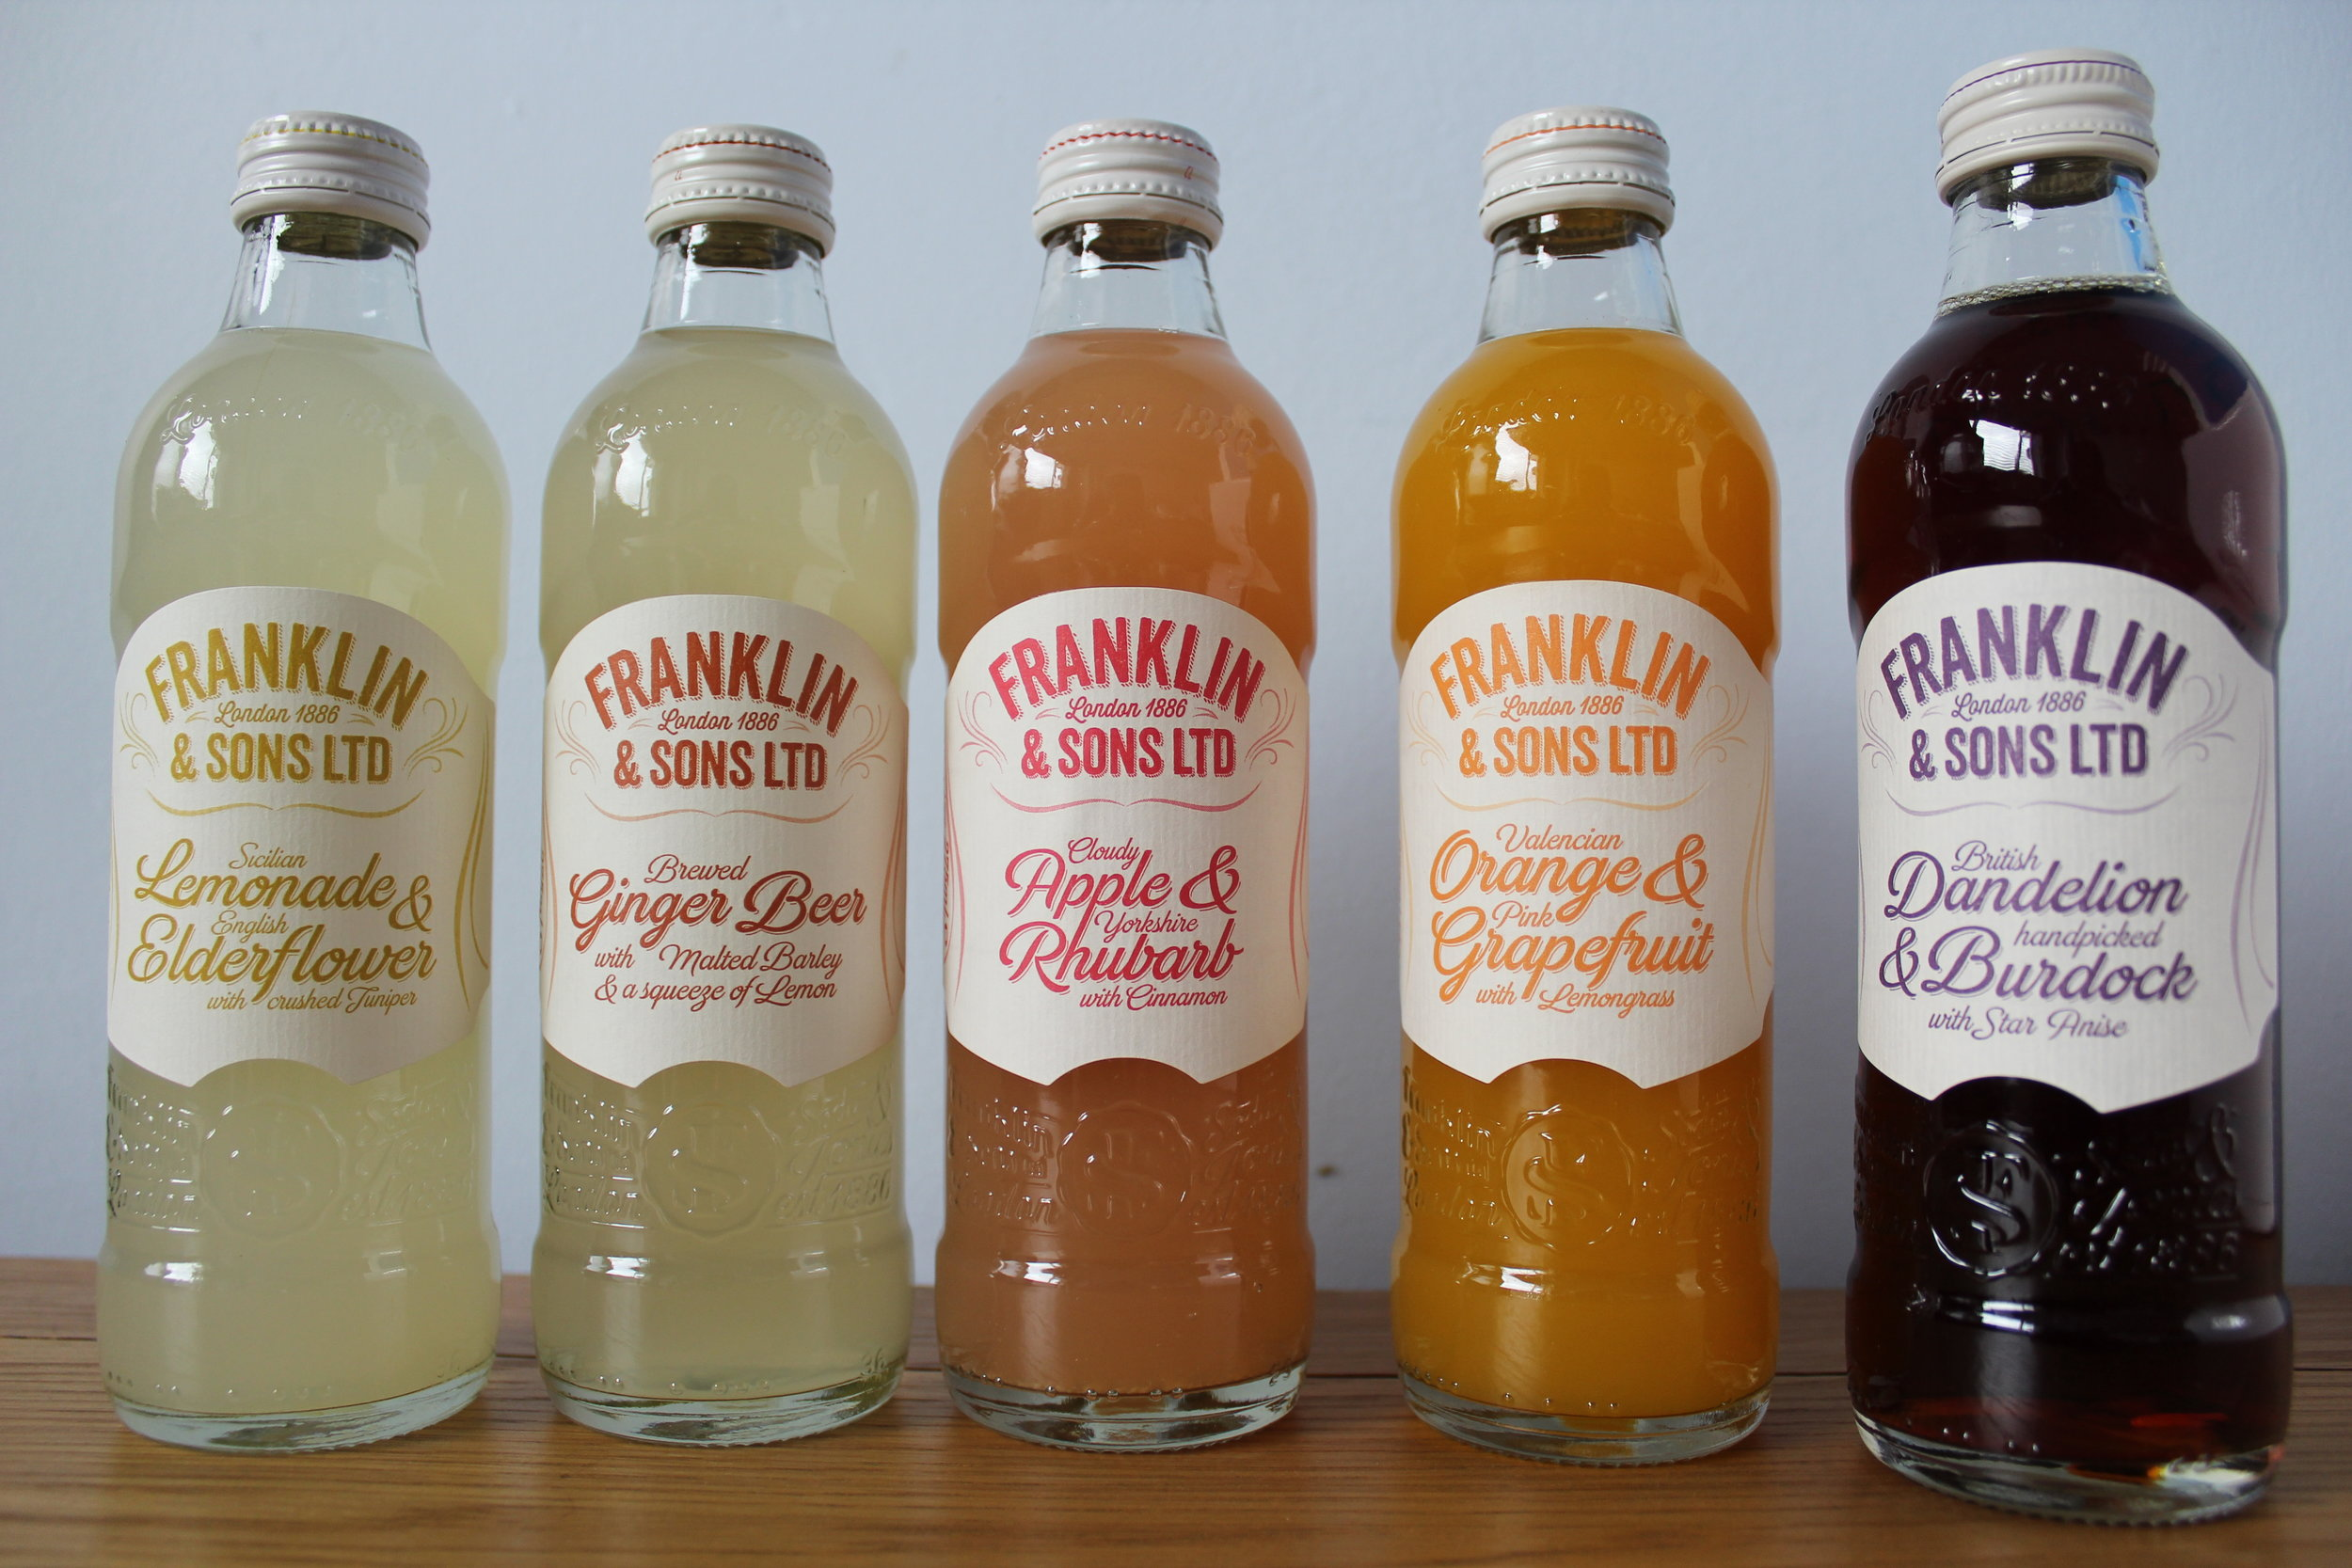 Franklin & Sons soft drinks and infused sodas